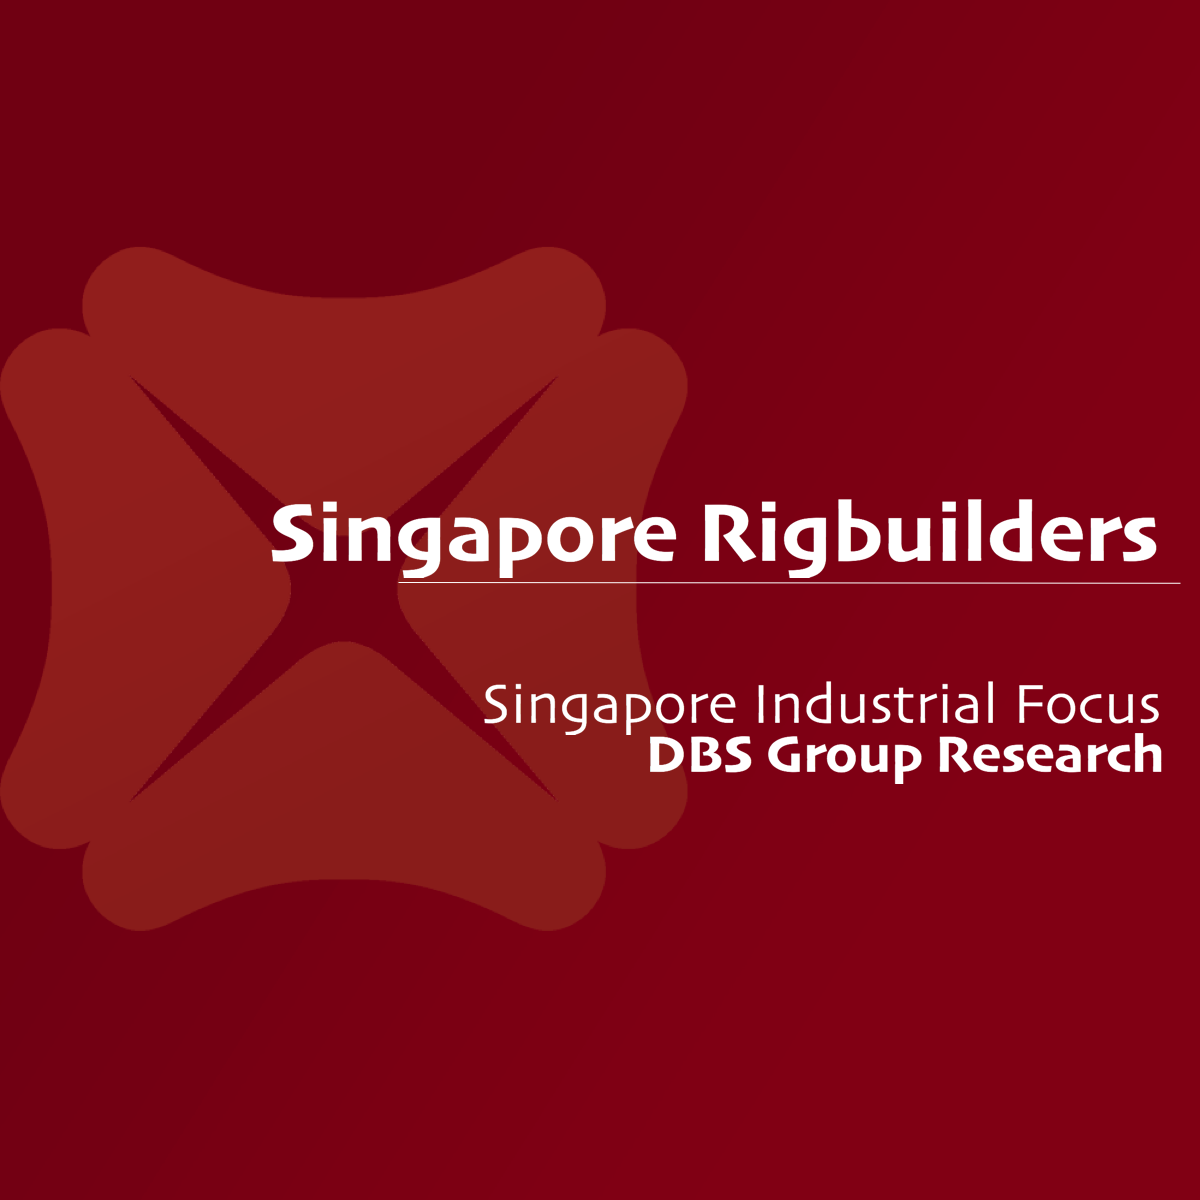 Singapore Rigbuilders - DBS Vickers 2017-10-09: SMM-Borr Inks Landmark Rig Deal